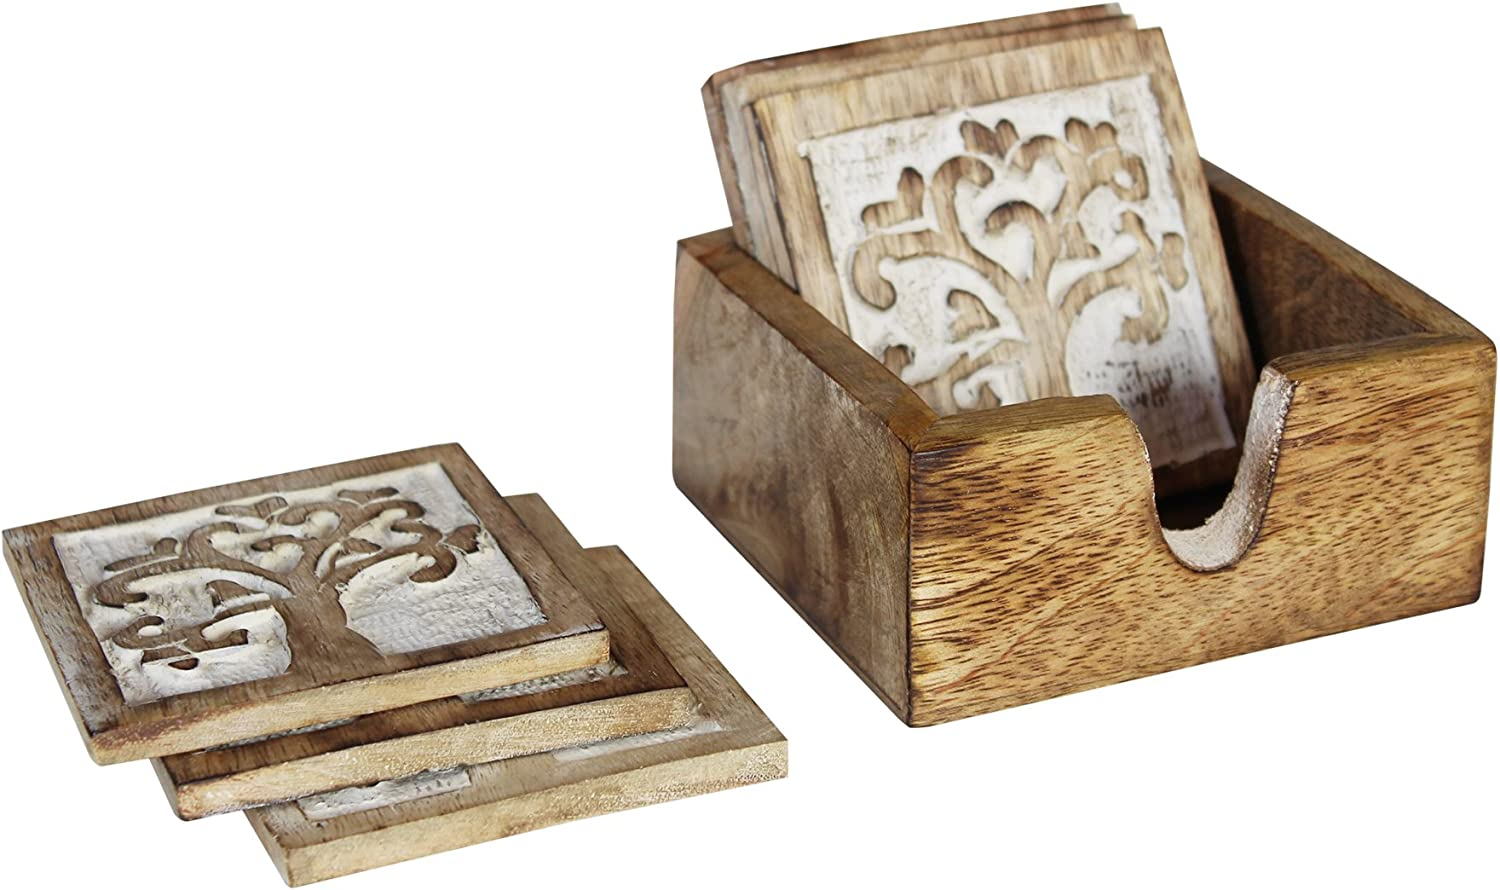 Handmade Wooden Coasters Pack of 4 for Drink Tea Coffee Table White Distressed Floral Design Coaster with Holder Stand